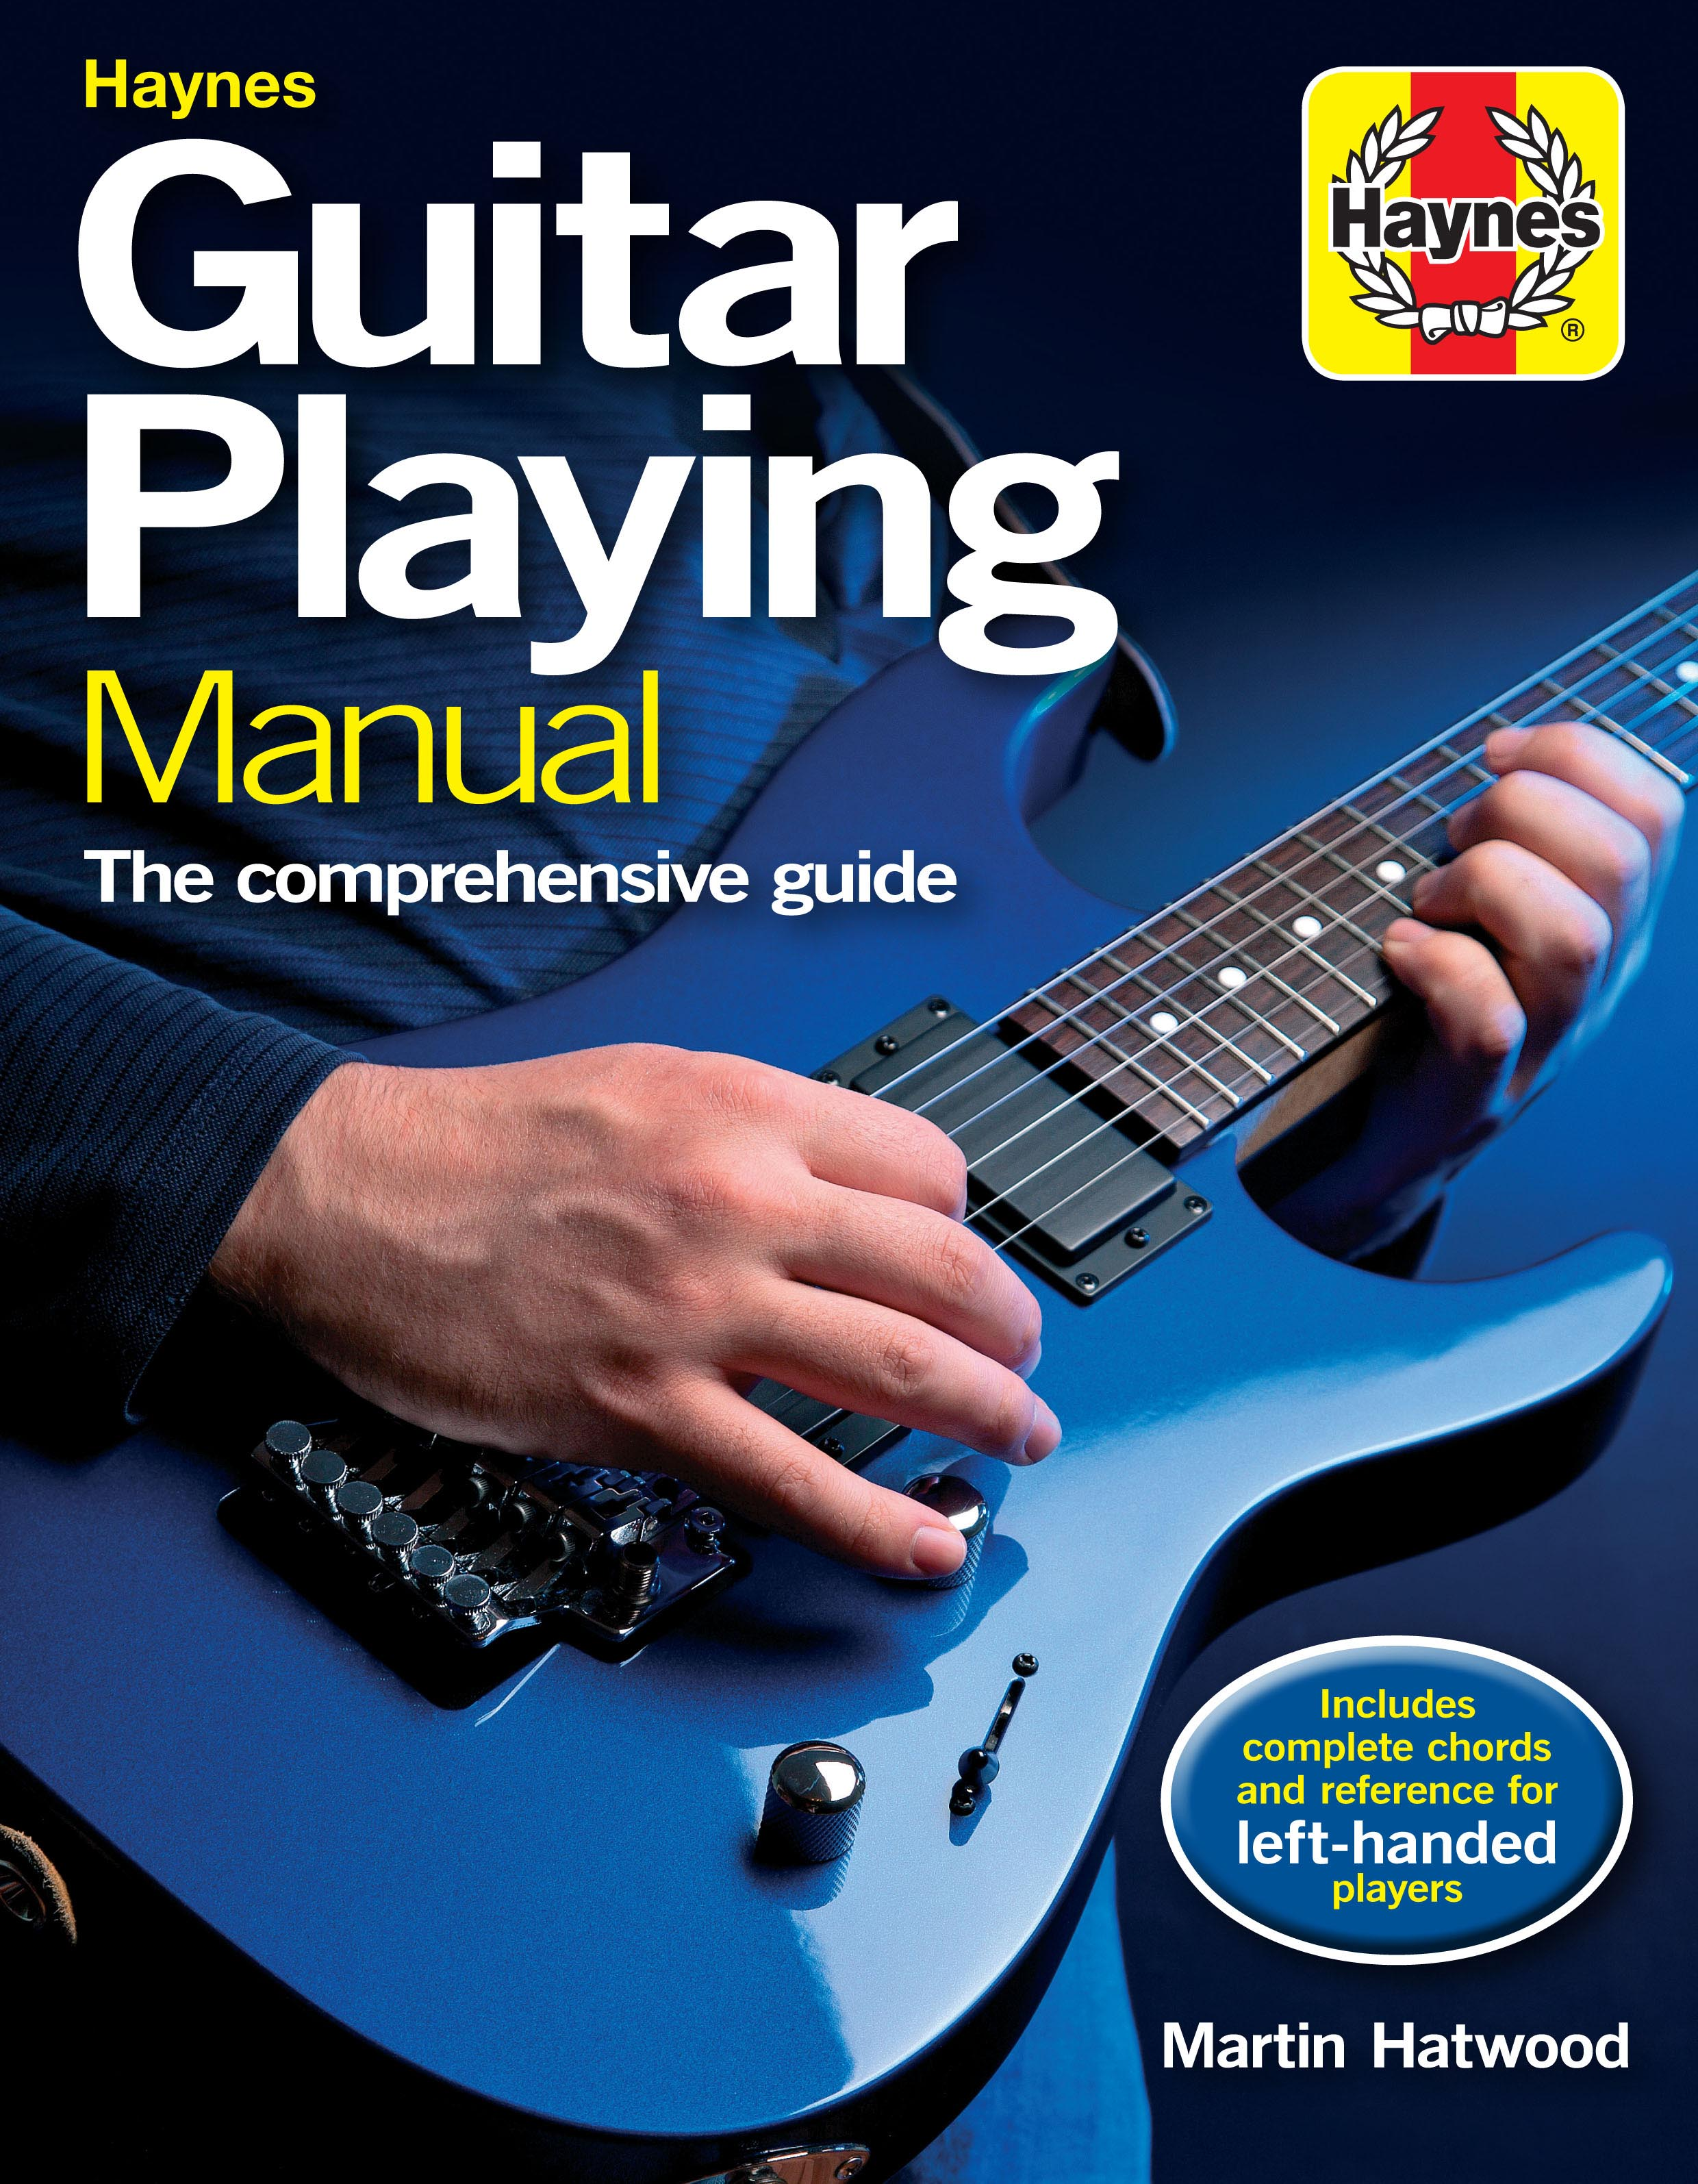 Guitar Playing Manual (Paperback)